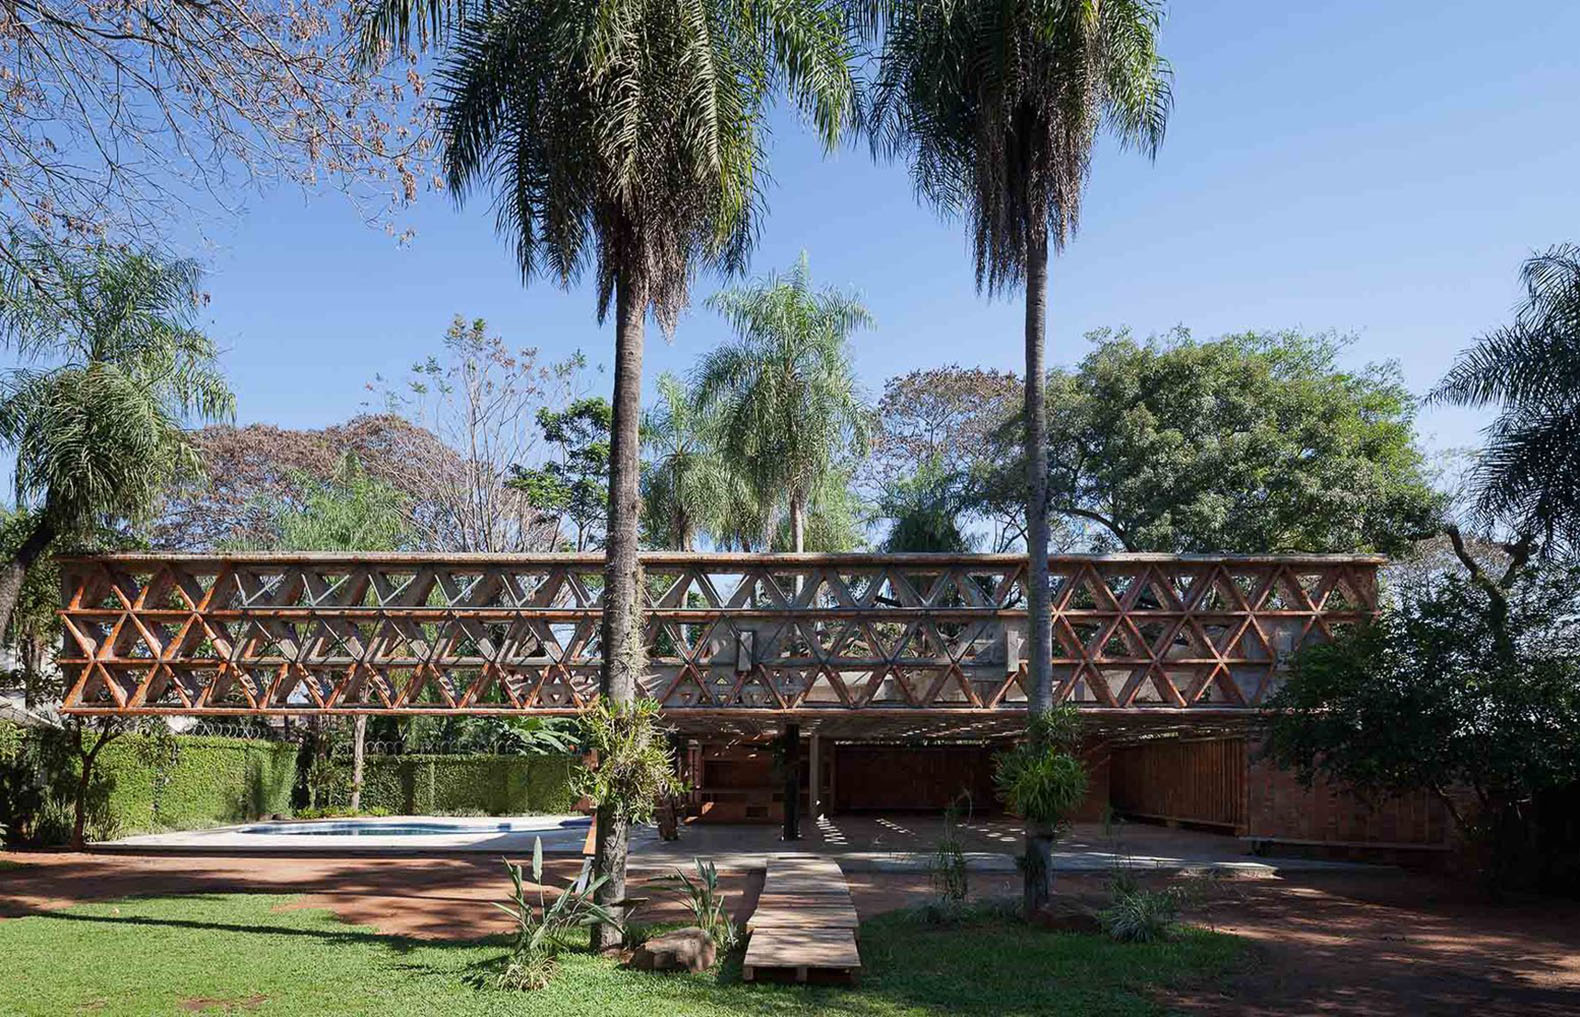 huge lattice canopy made with brick and steel shelters paraguay's